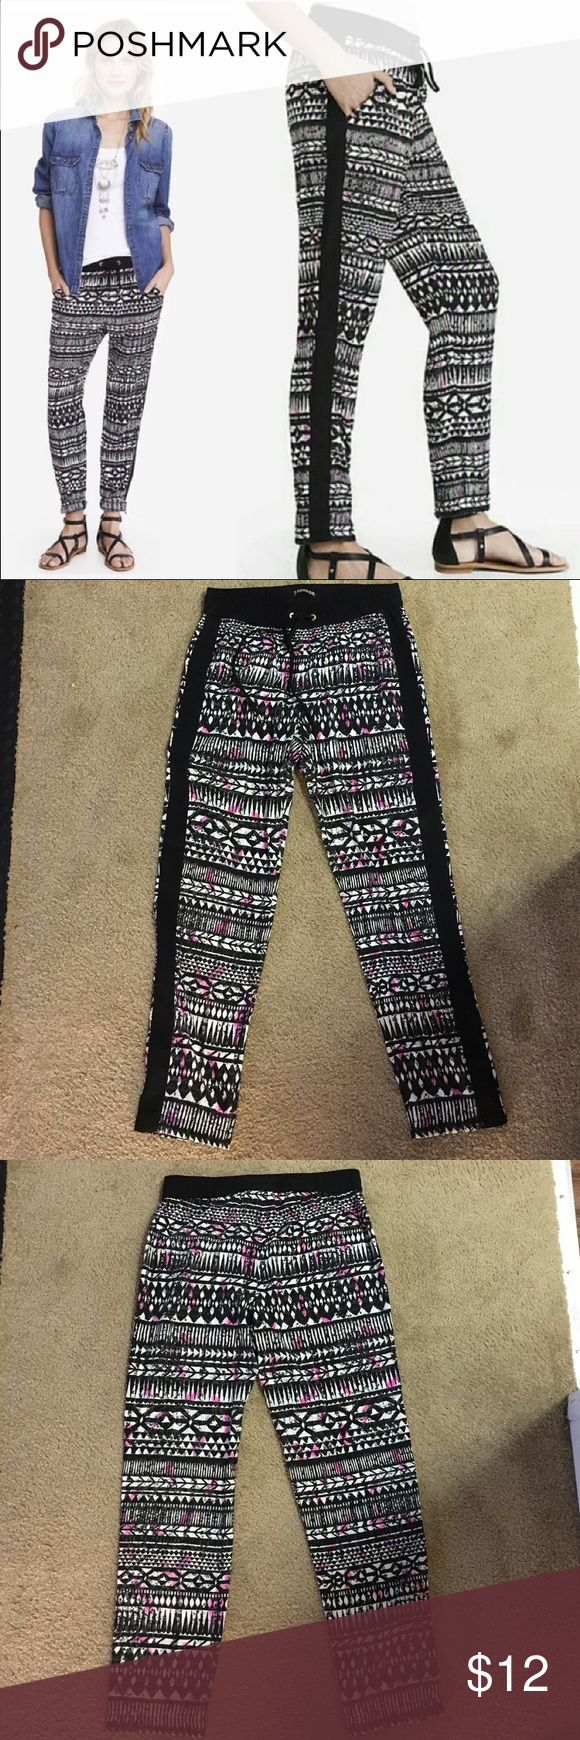 Express Women's Soft Pants, Drawstring Waist Express, women's casual soft pants, drawstring waist, 100% polyester, black/white/pink, size S, like new condition worn one time Express Pants Track Pants & Joggers